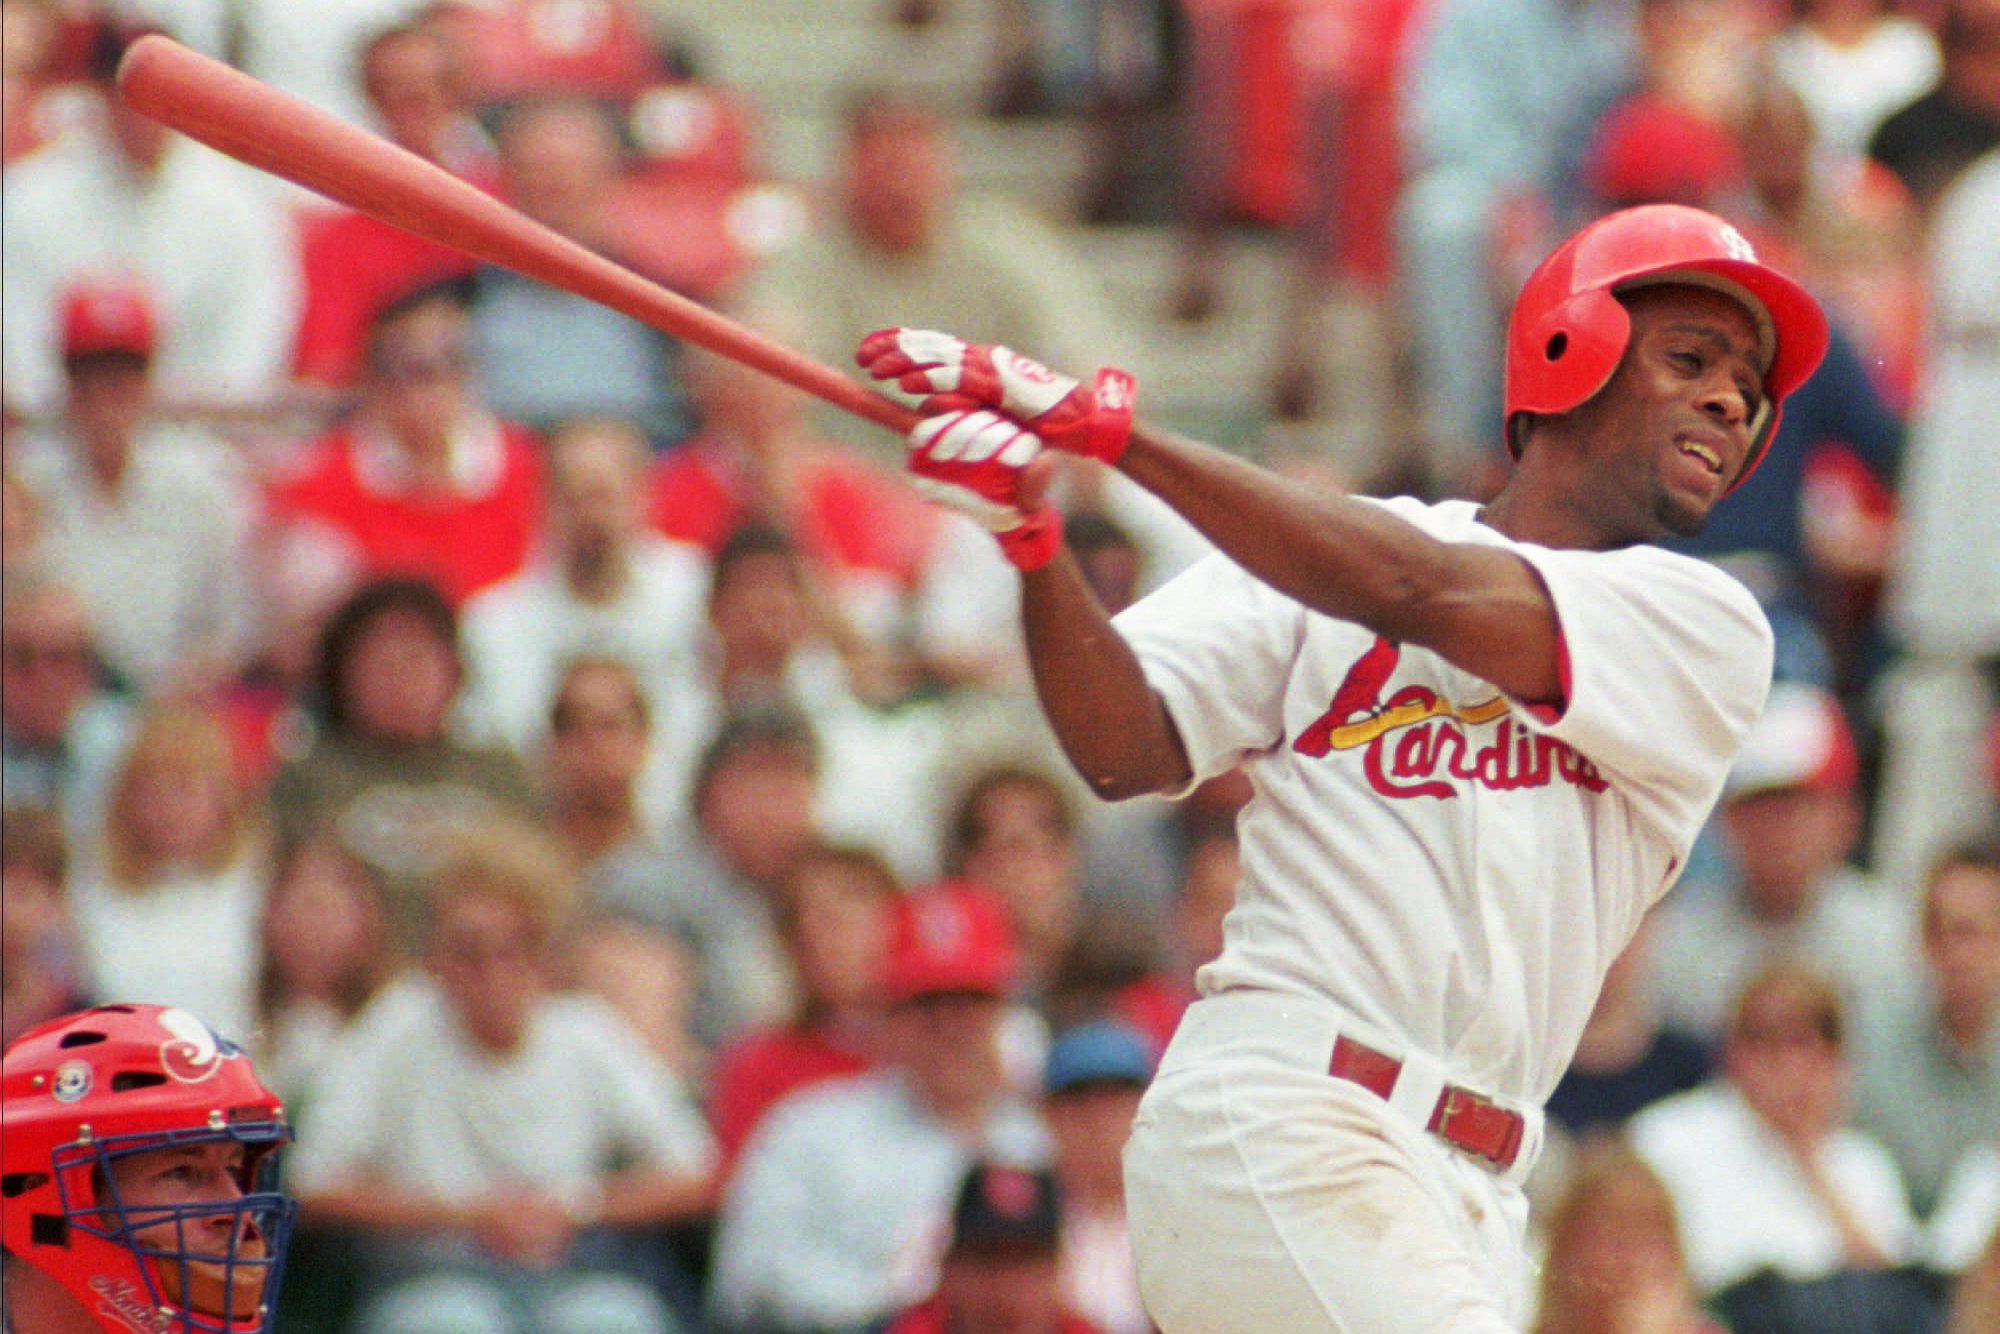 St. Louis Cardinals Delino DeShields swings during the first inning against the Montreal Expos Wednesday, April 29, 1998, at Busch Stadium in St. Louis. DeShields was among league-leaders in batting average and triples during the 1998 season.